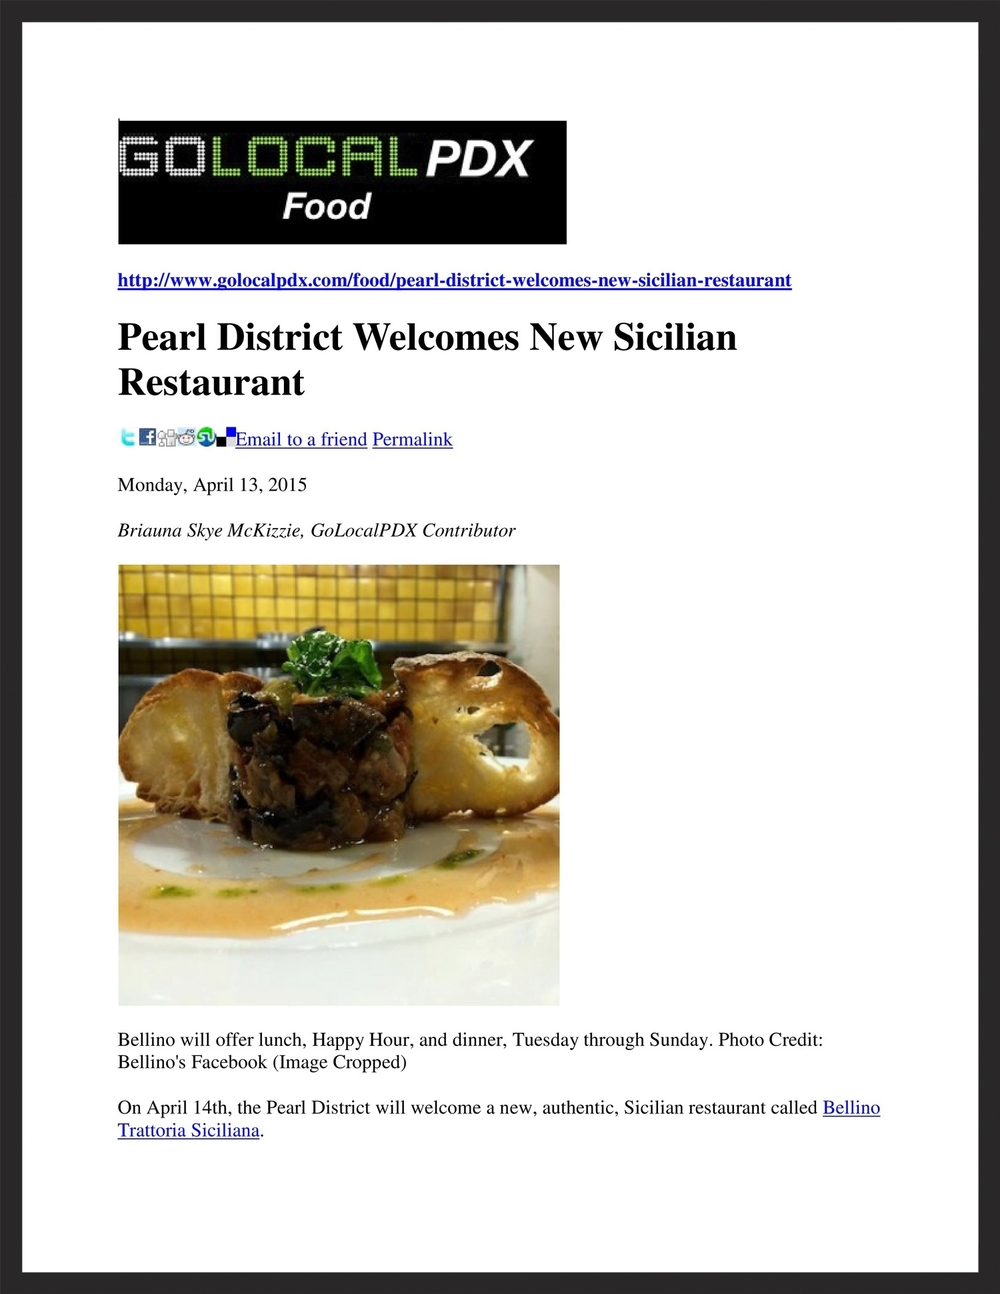 BELLINO TRATTORIA SICILIANA   Go Local PDX  04.13.2015